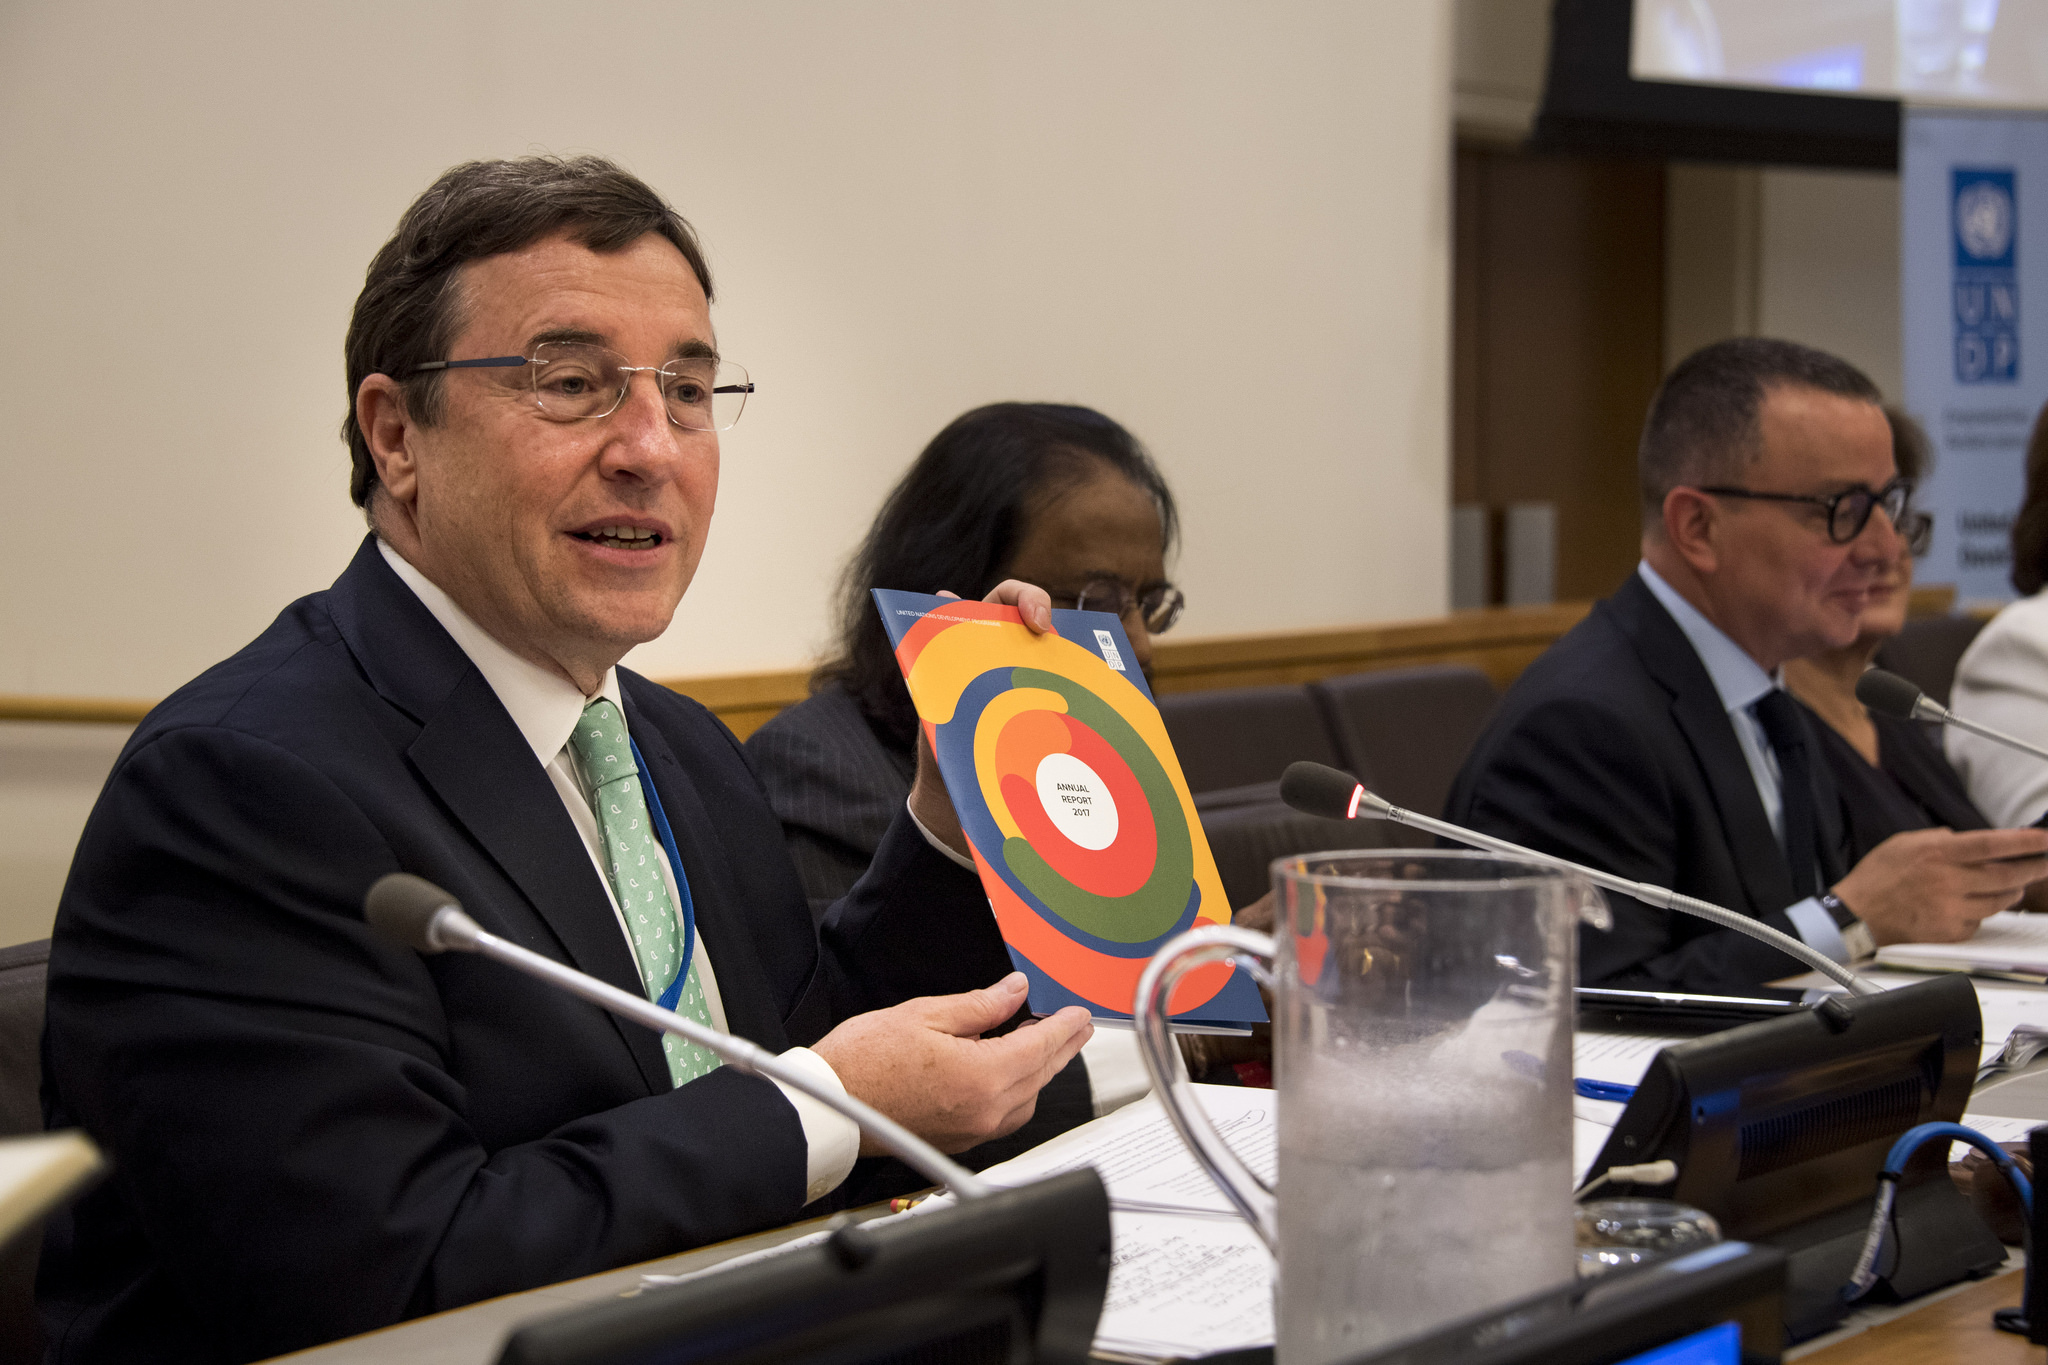 UNDP Annual Report 2017 - The UNDP Administrator, Achim Stiener, presenting the annual report at the Executive Board meeting to all UNDP member states.